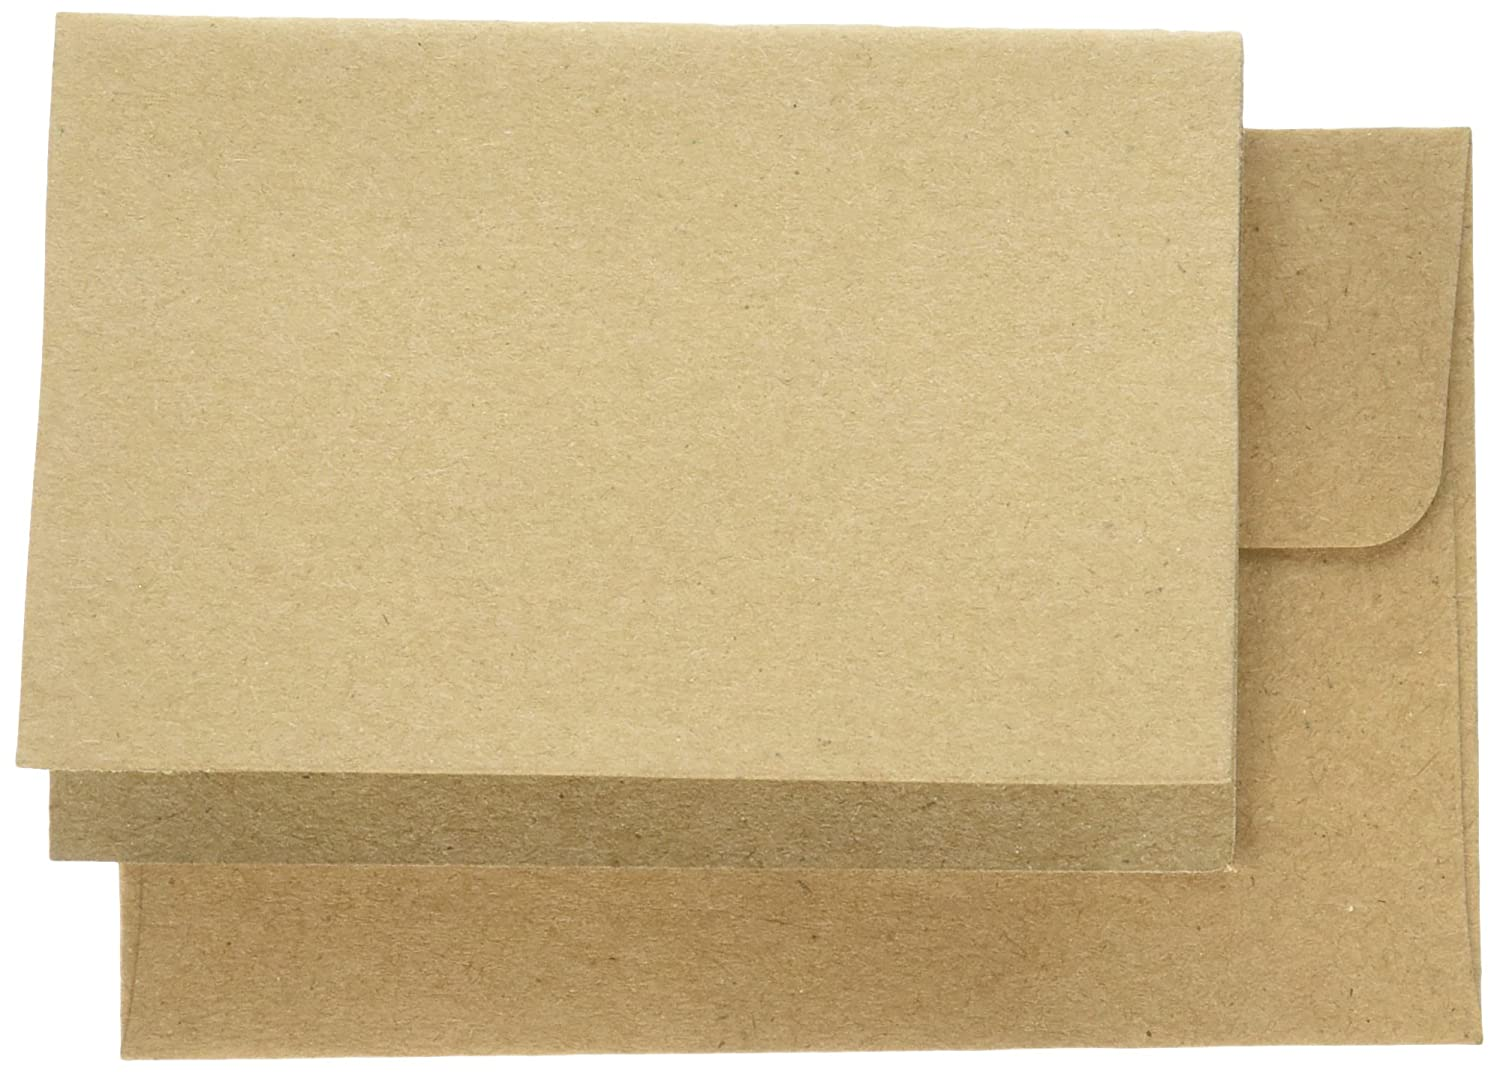 Kraft Creative Converting American Crafts Cards /& Envelopes 2.5 by 3.5 8 //Pack